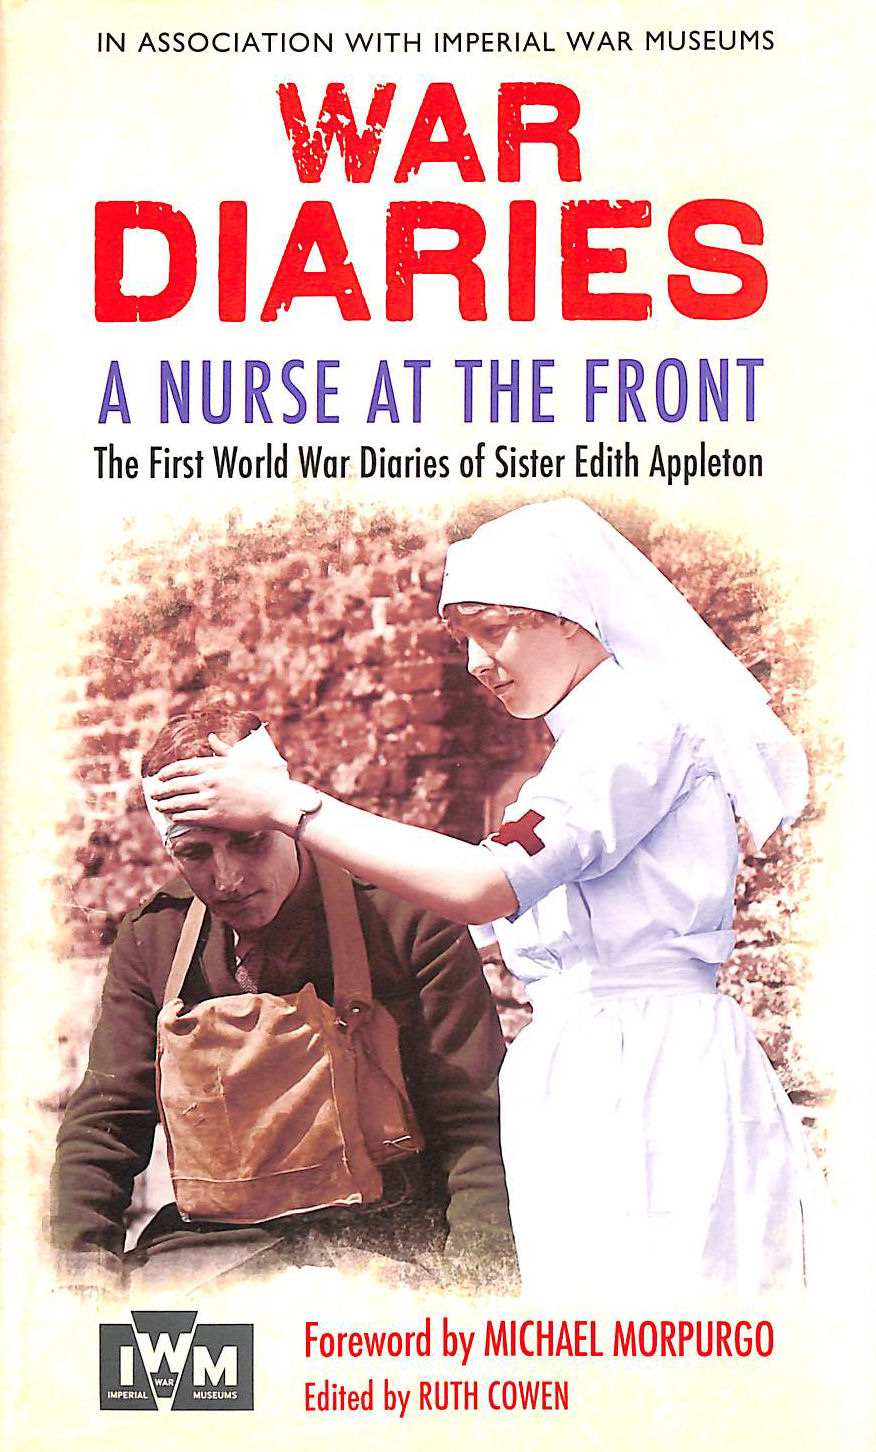 Image for A Nurse at the Front: The First World War Diaries of Sister Edith Appleton